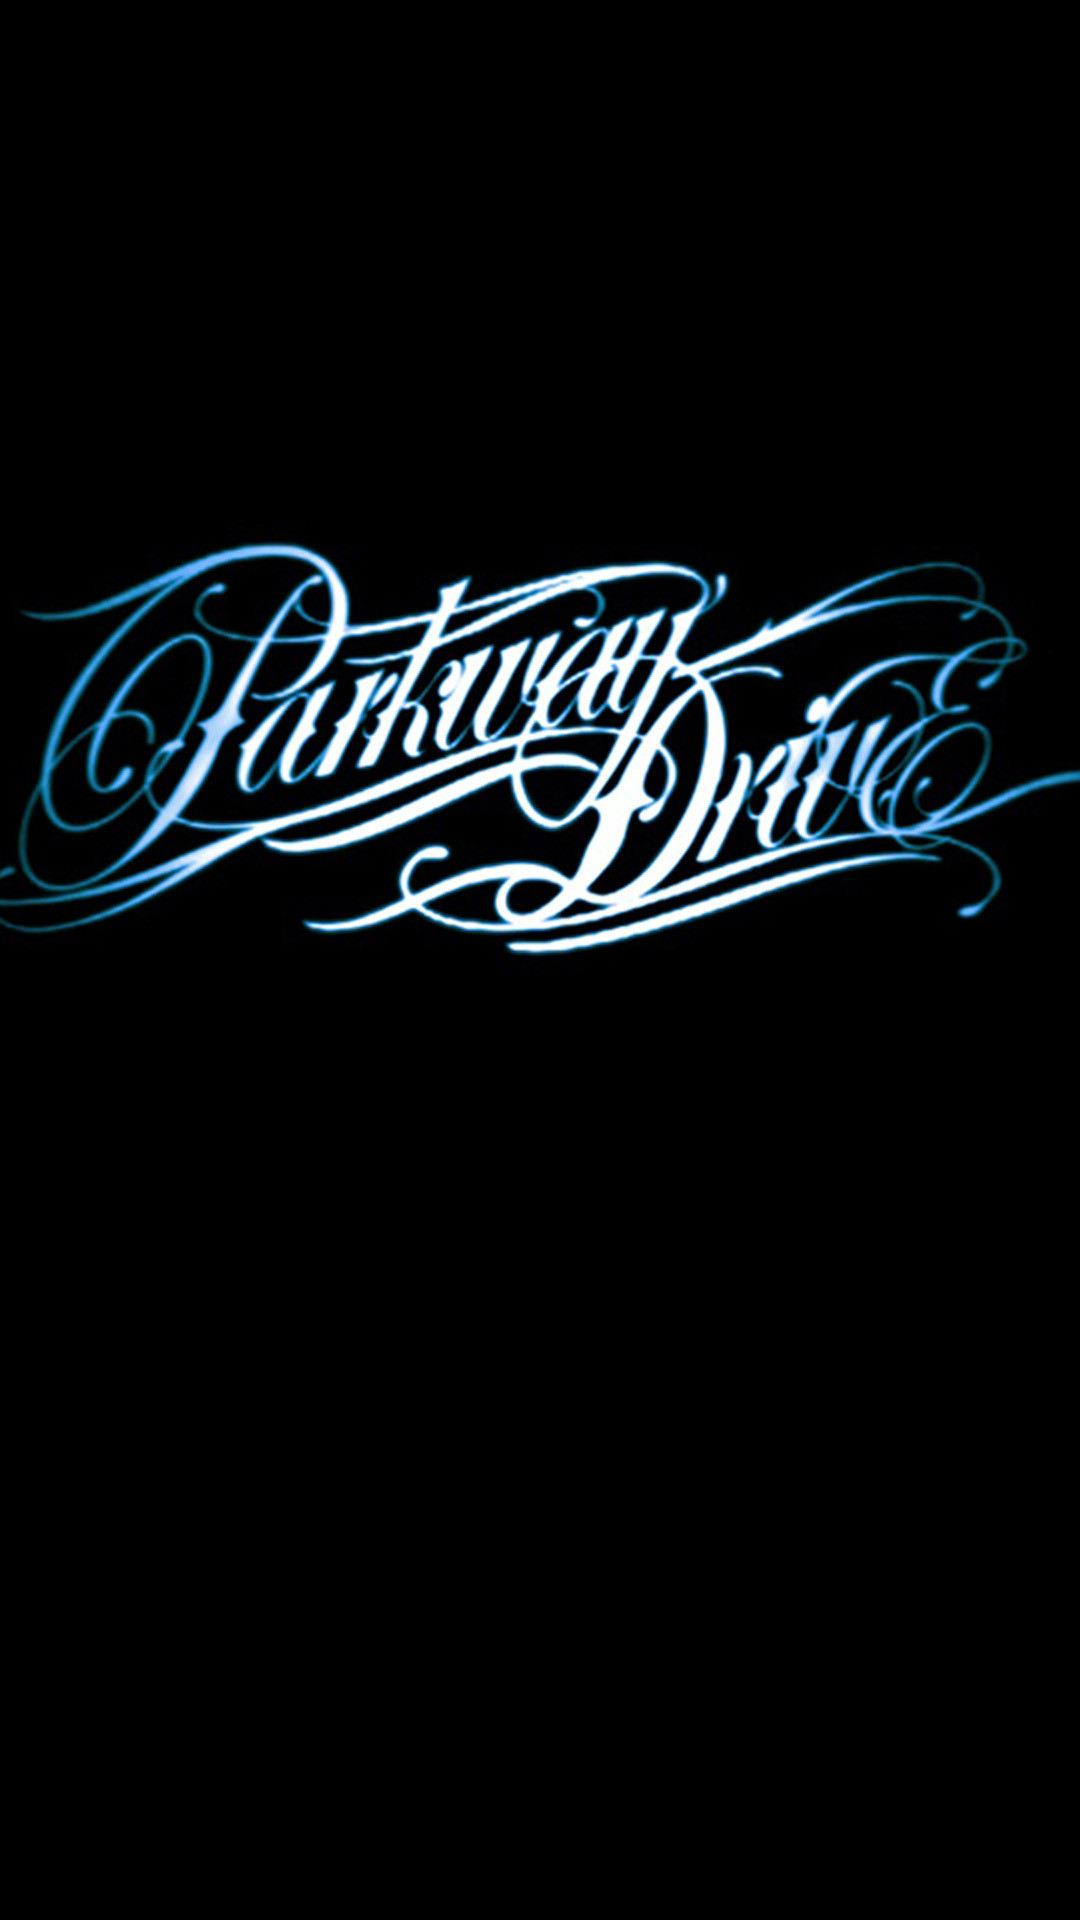 1080x1920 Parkway Drive HD Wallpaper iPhone 6 plus